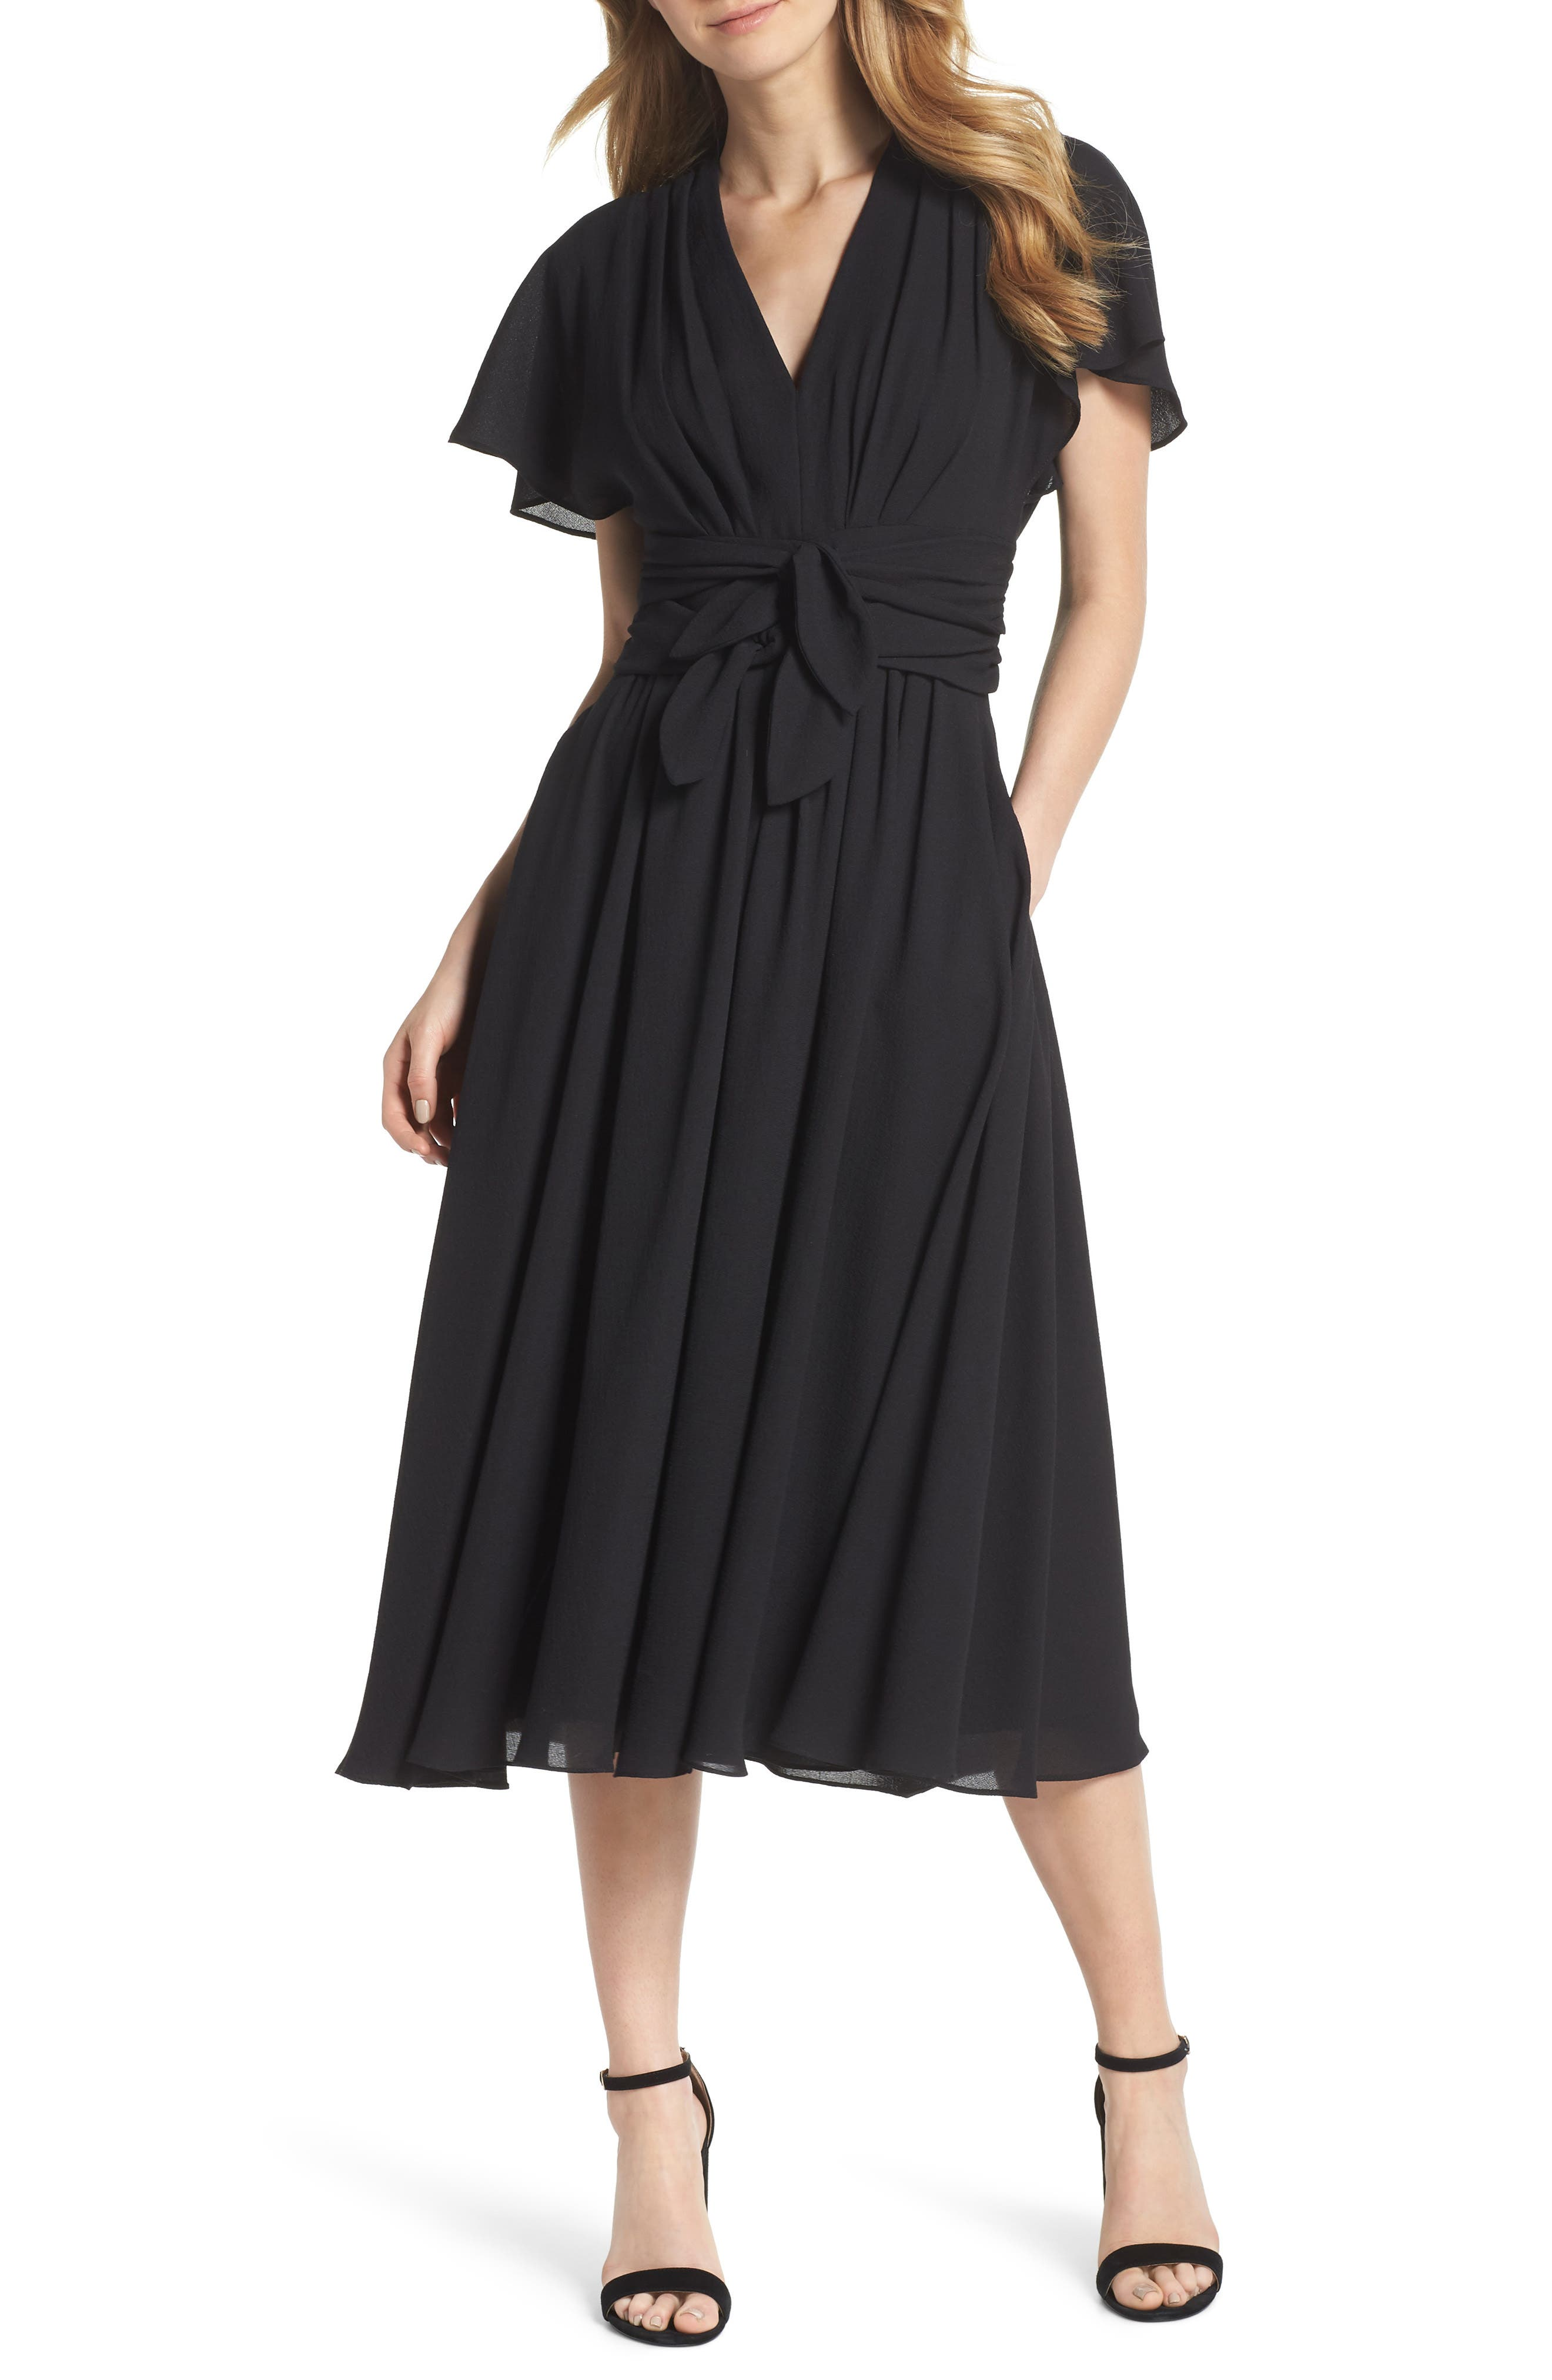 Indian Summers Inspired Clothing Womens Gal Meets Glam Collection Jane Tie Waist Midi Dress Size 8 - Black $125.96 AT vintagedancer.com